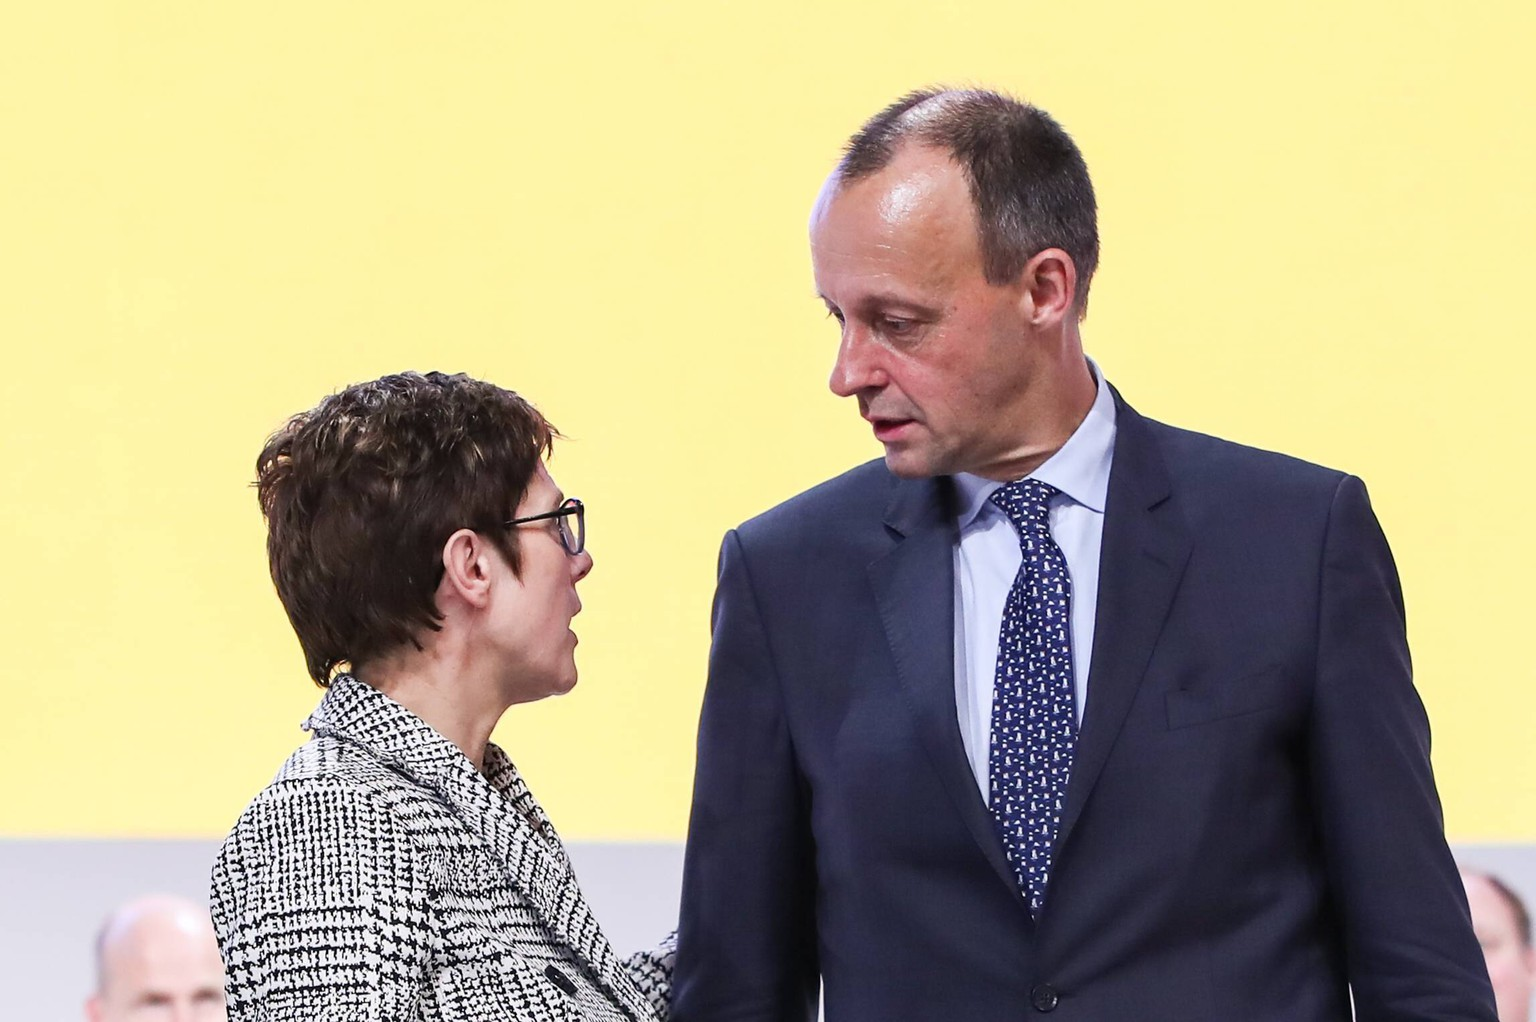 181208 -- HAMBURG, Dec. 8, 2018 -- Newly-elected chairperson of Germany s Christian Democratic Union CDU Annegret Kramp-Karrenbauer L talks with Friedrich Merz during the party conference of CDU in Hamburg, Germany, on Dec. 7, 2018. Annegret Kramp-Karrenbauer was elected new chairperson of Germany s ruling Christian Democratic Union CDU at the party s 31st national congress here on Friday, succeeding Chancellor Angela Merkel who has led the party for 18 years.  GERMANY-HAMBURG-CDU-PARTY CONFERENCE-KRAMP-KARRENBAUER ShanxYuqi PUBLICATIONxNOTxINxCHN